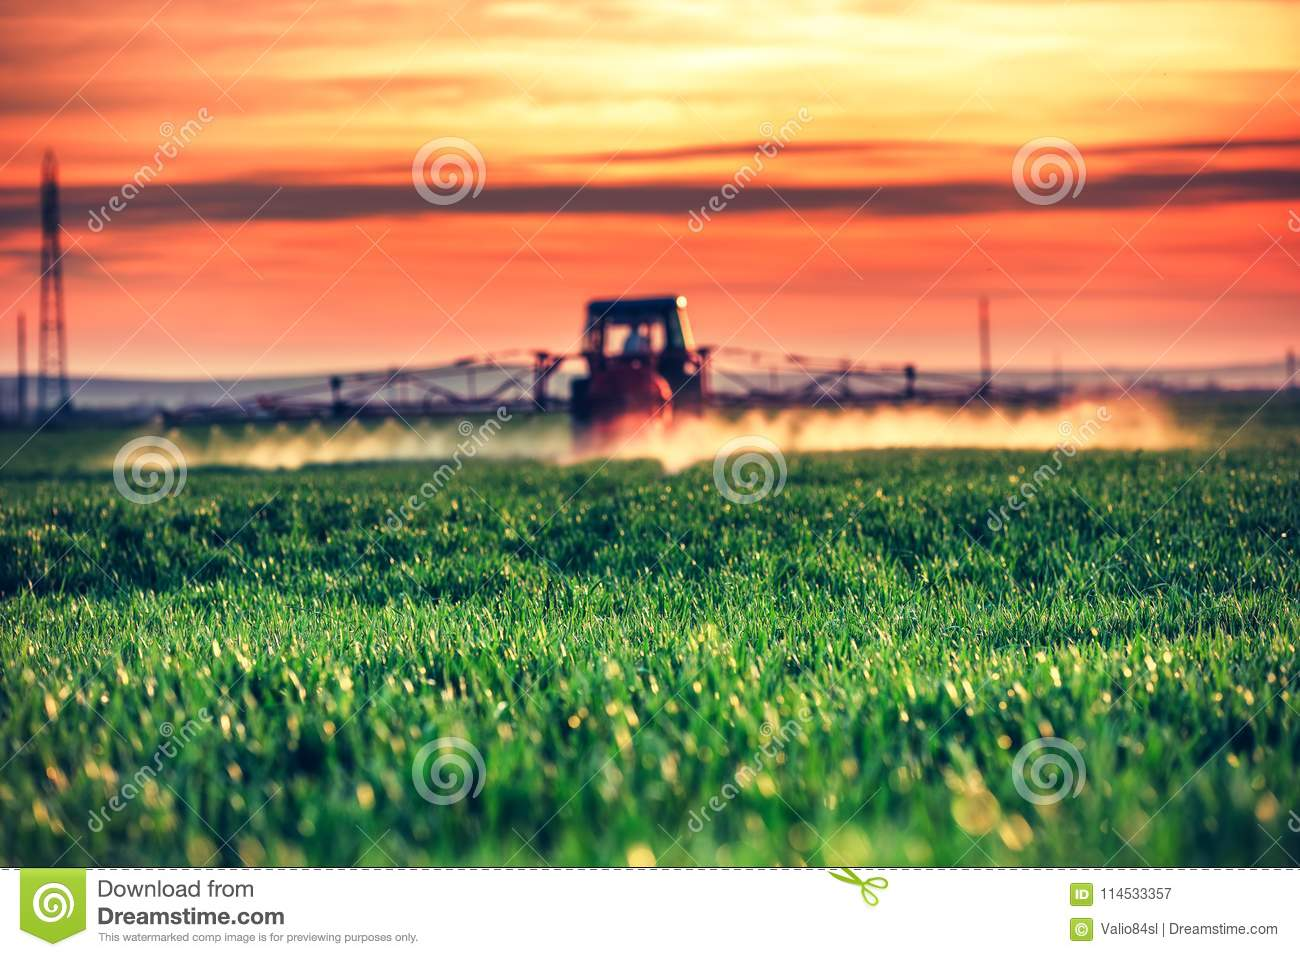 Farming tractor plowing and spraying on field by the sunset